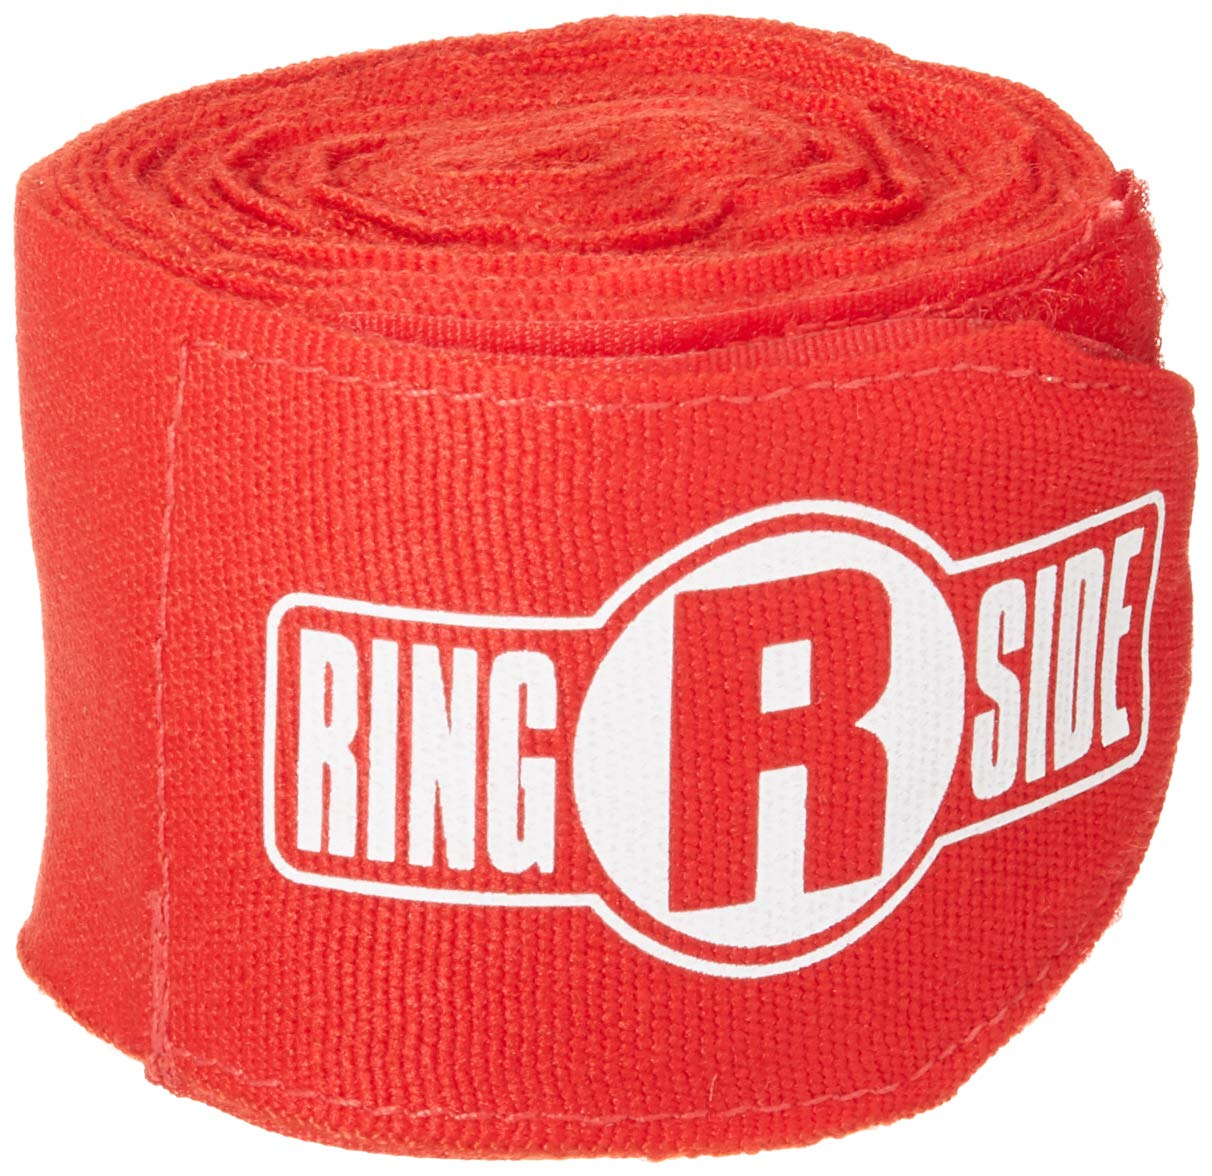 Ringside Pro Mexican Handwraps – 200